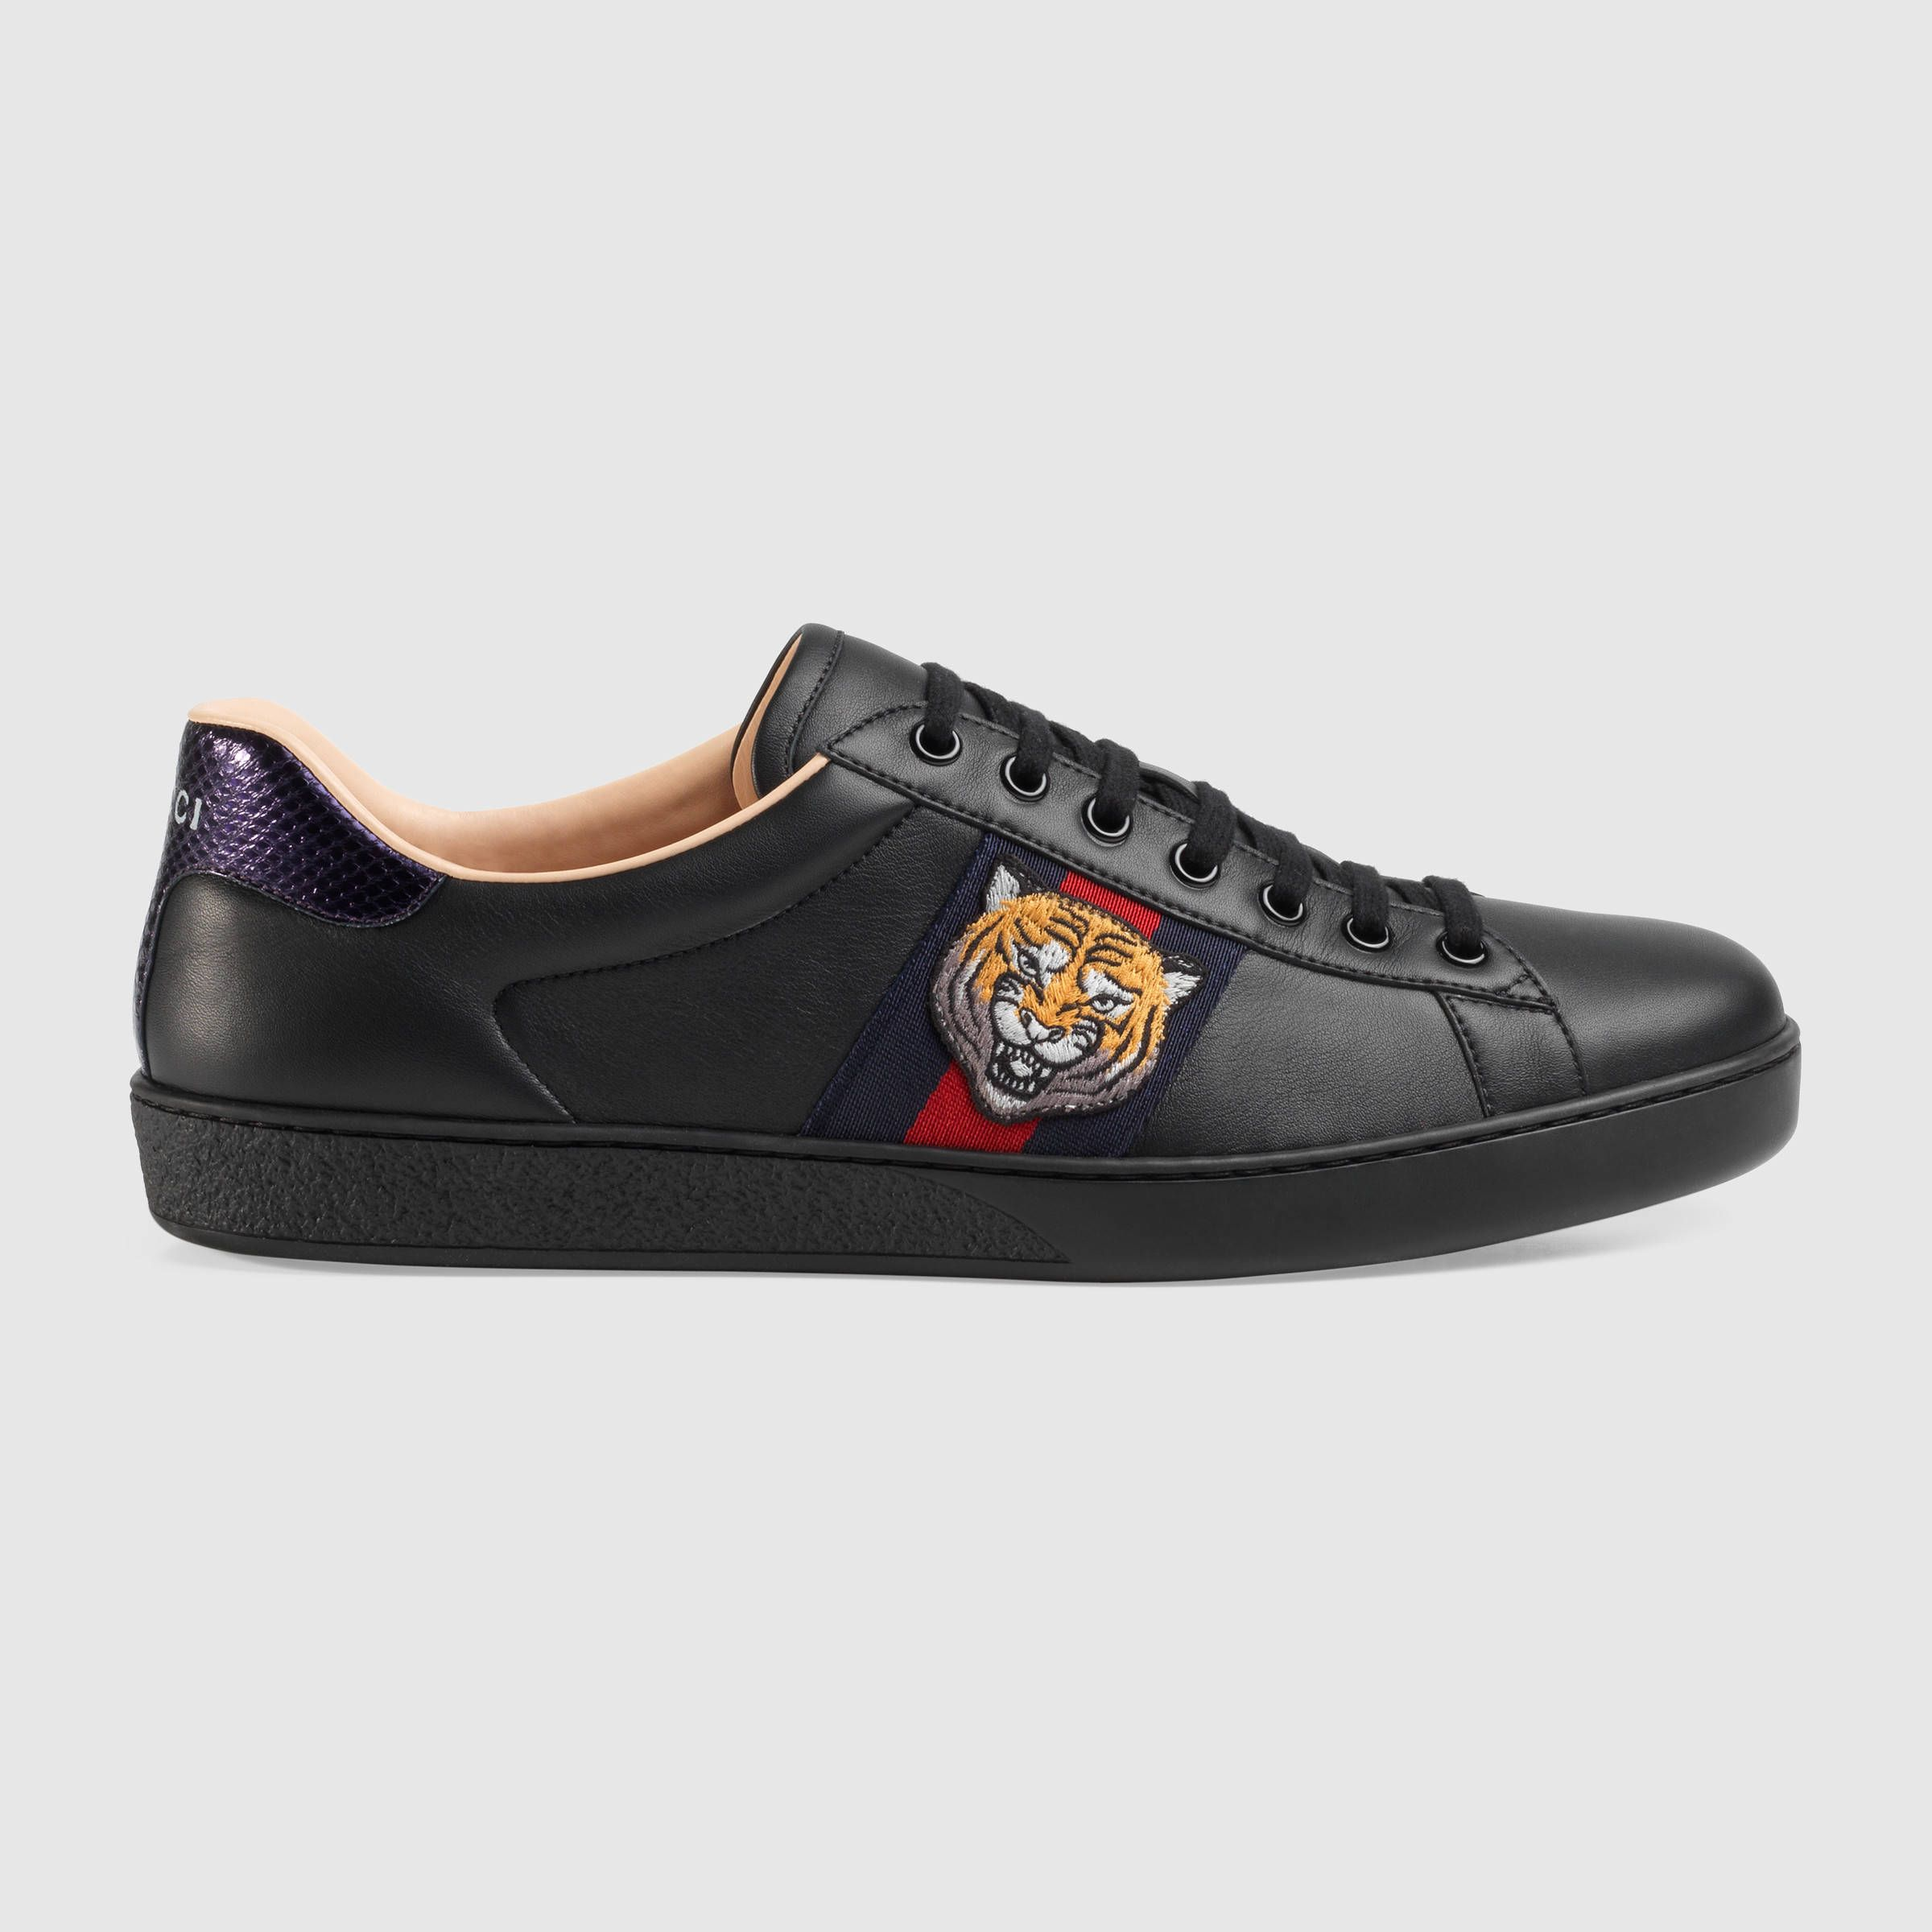 san francisco bacbb 62977 Gucci Shoes Online Exclusive  810